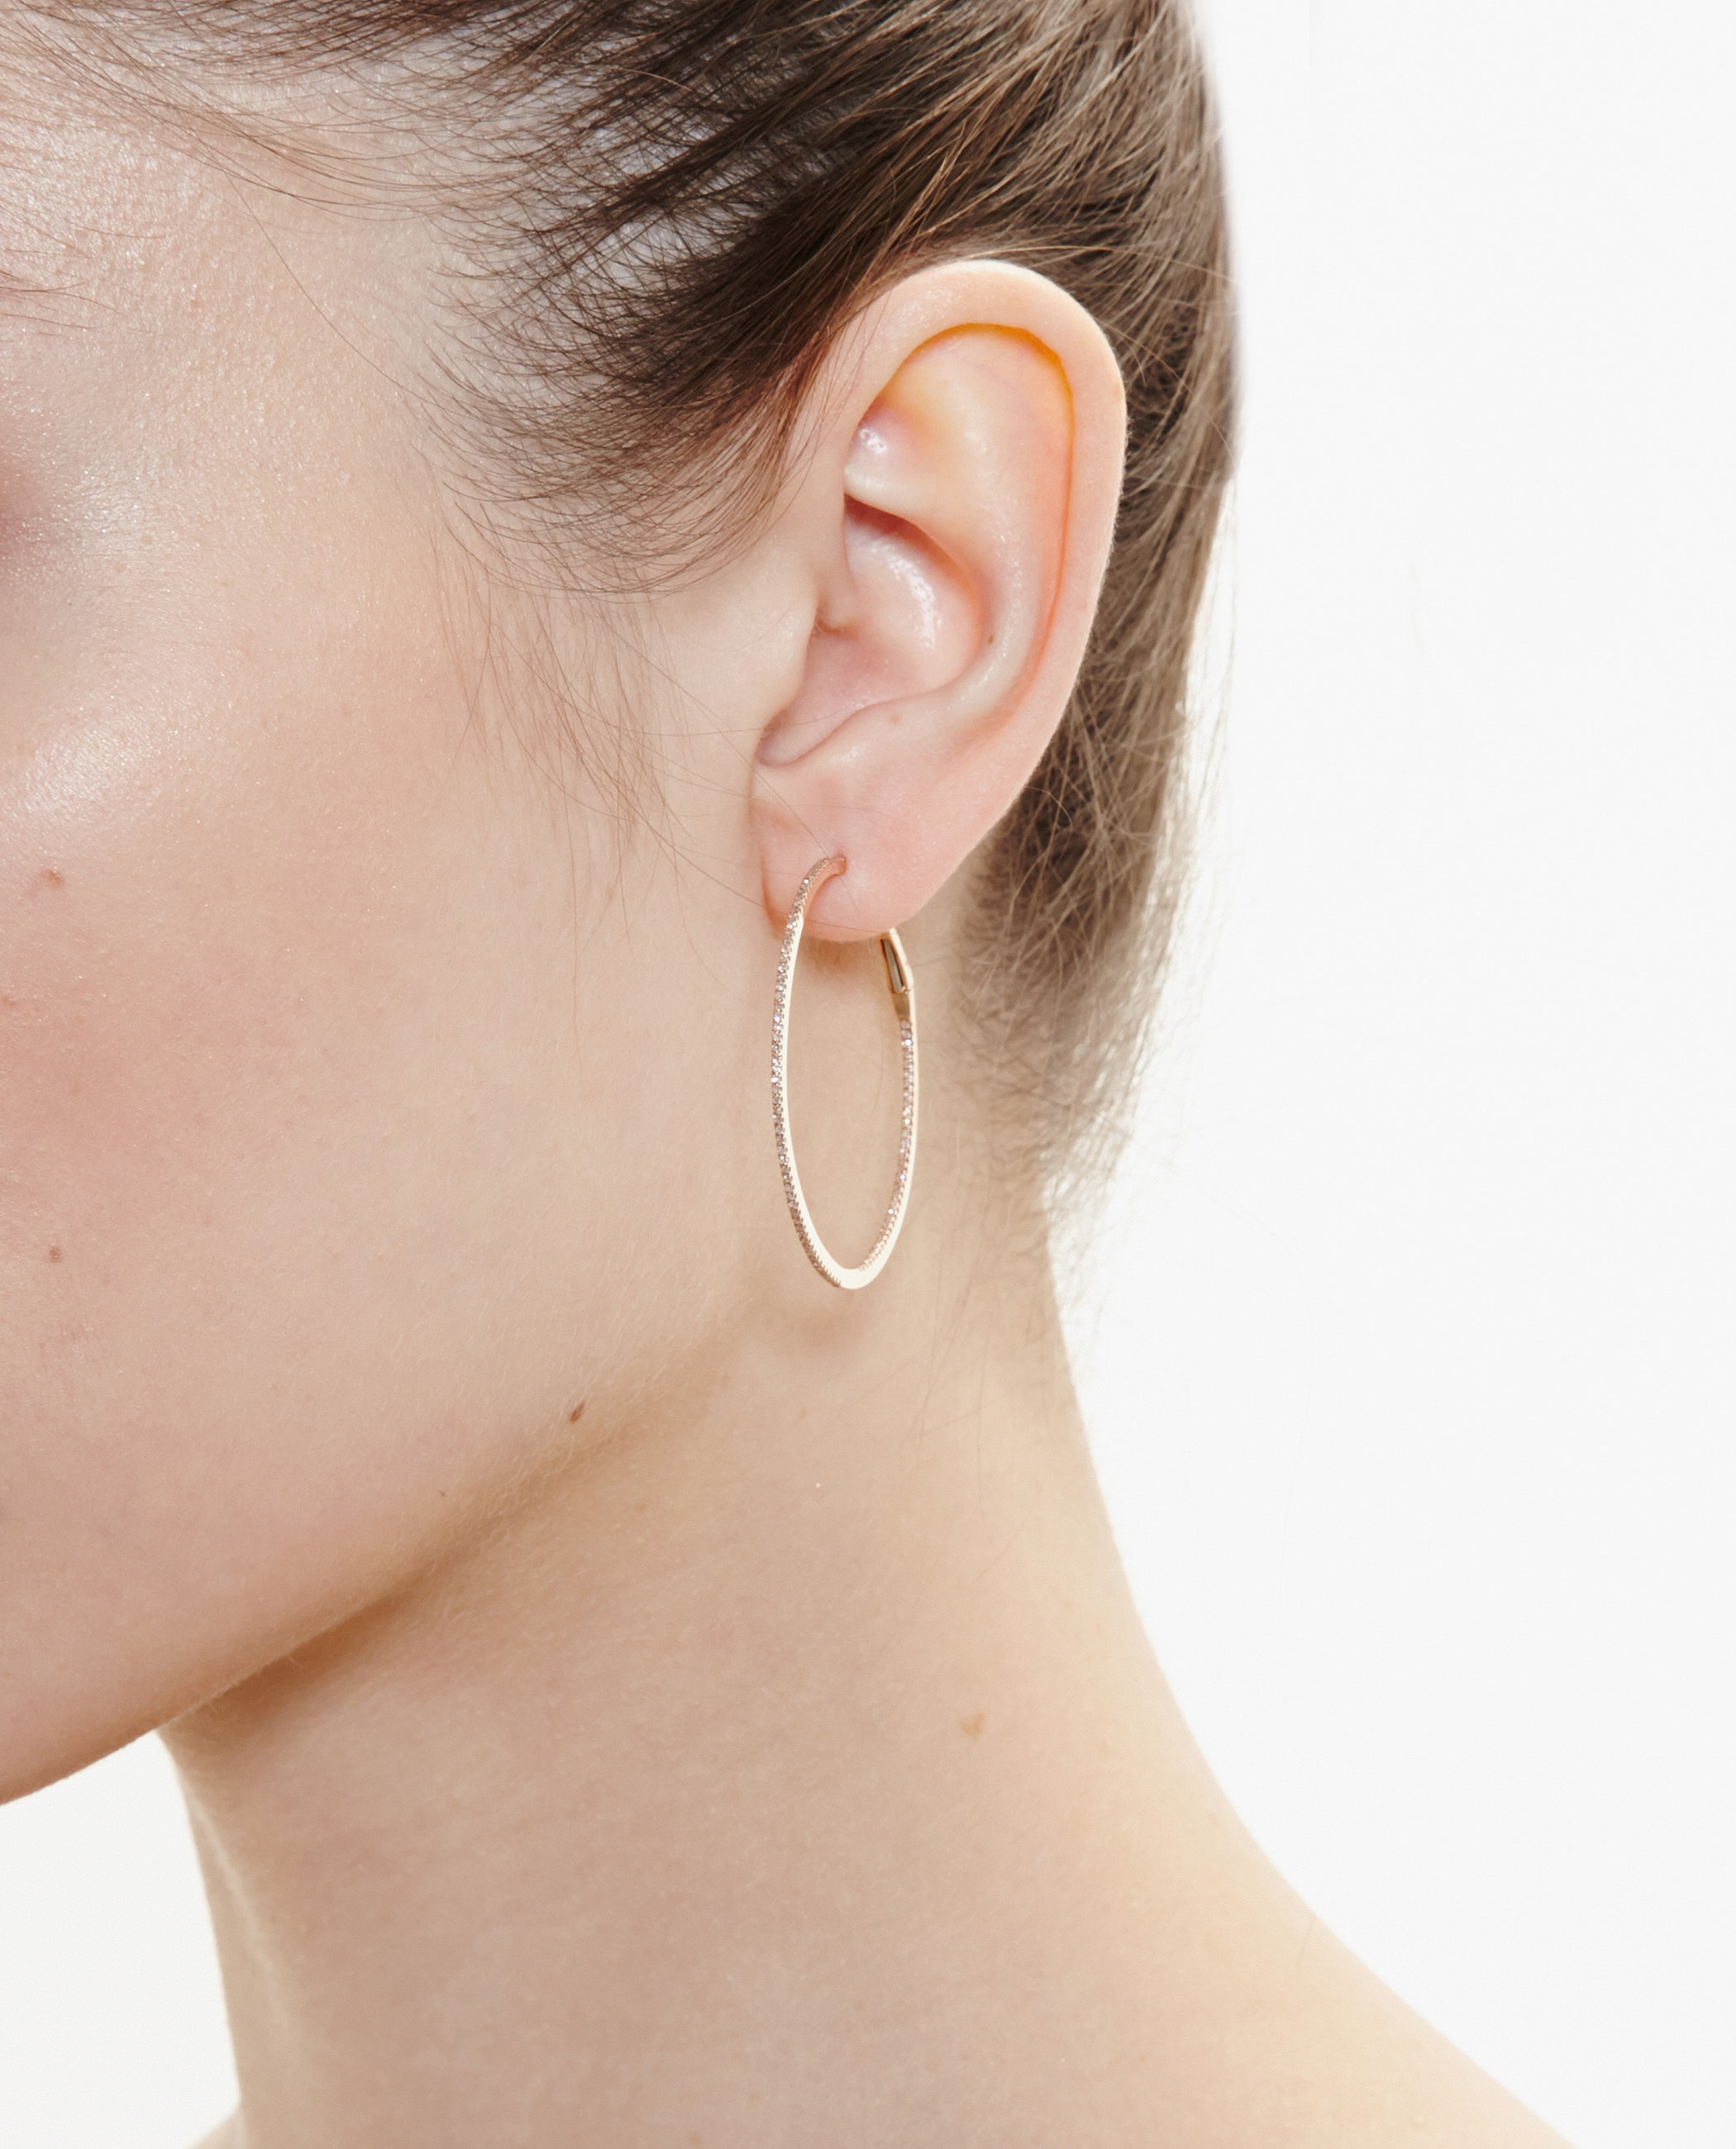 Gallery Previously Sold At Browns Women S Gold Hoop Earrings